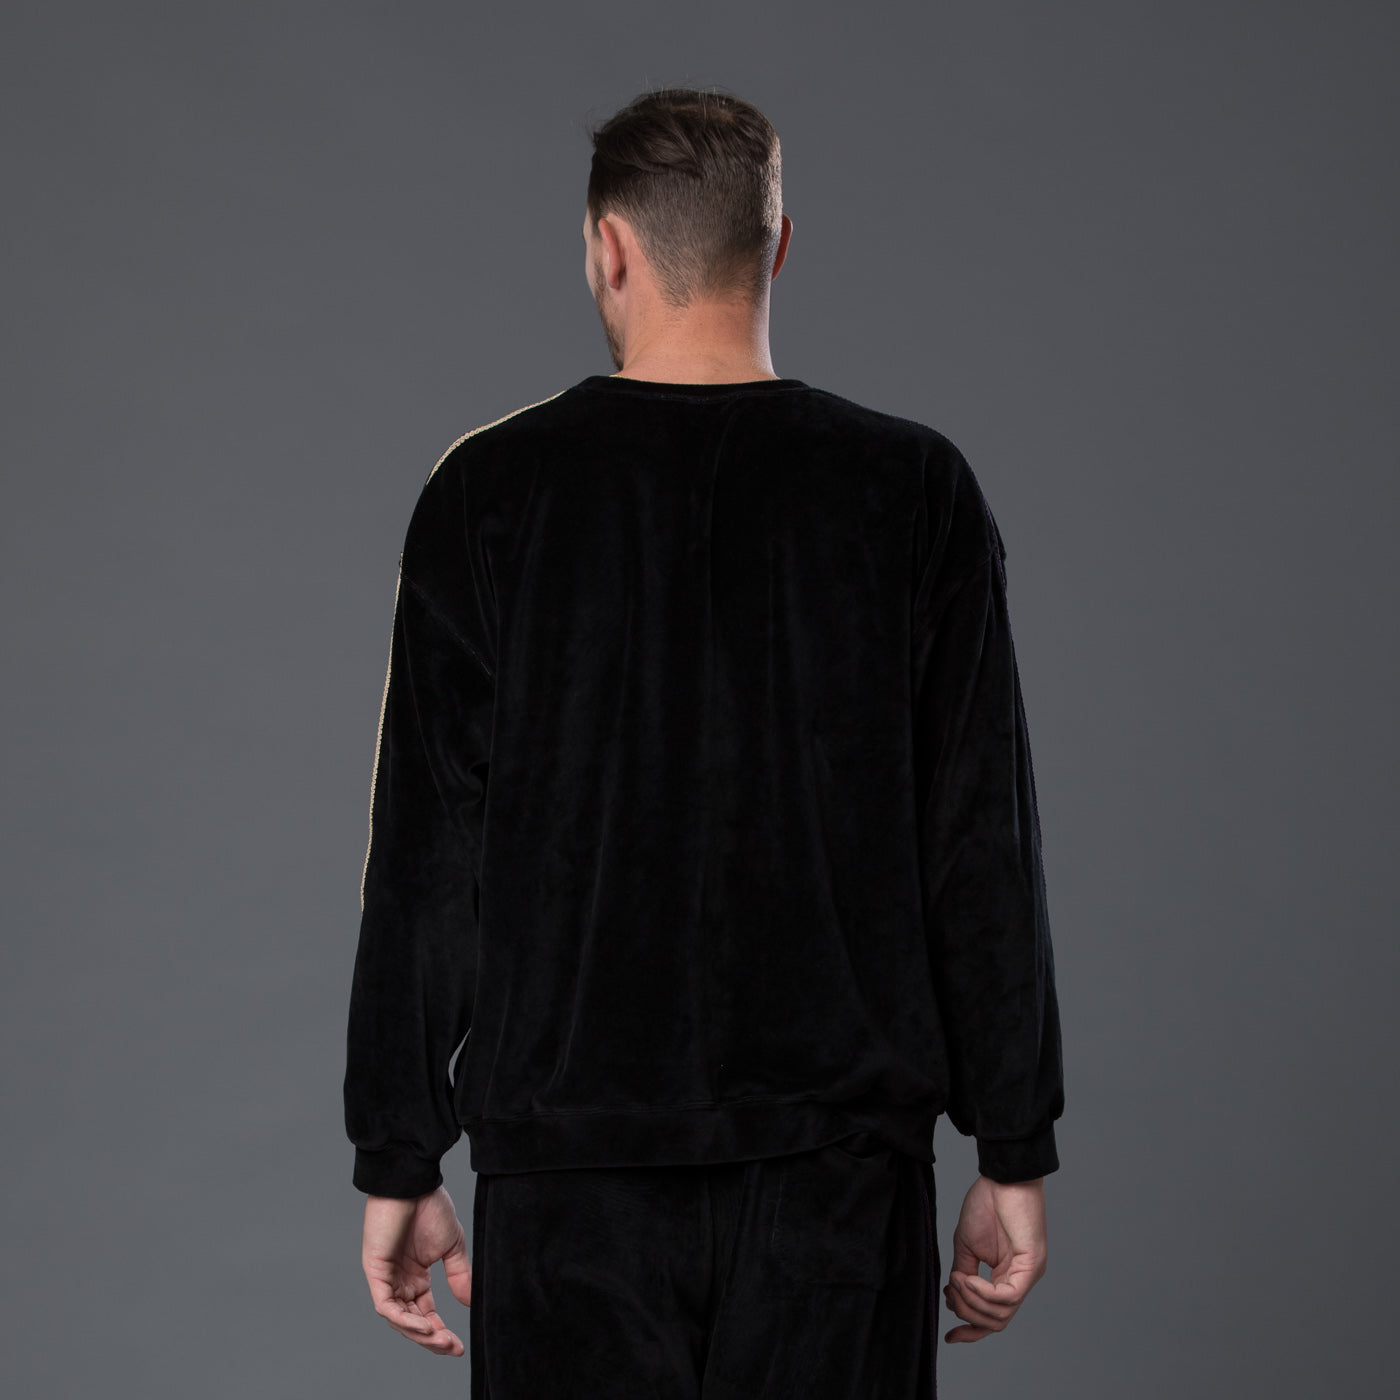 s.k. manor hill black velvet sweatshirt